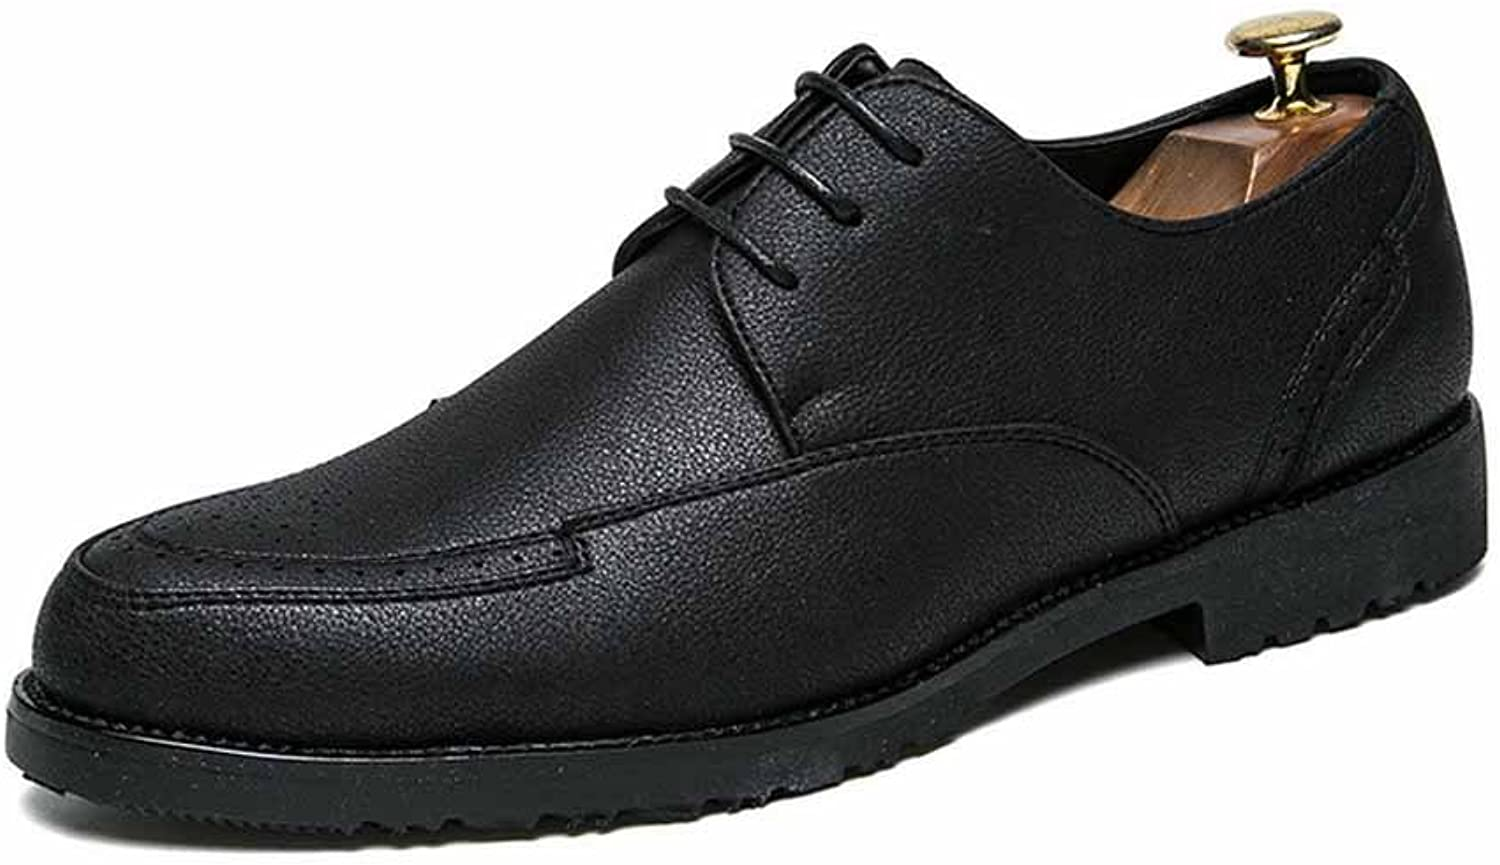 GLSHI Men Fashion Business Derby New Seasons Simple Casual Dress Leather shoes